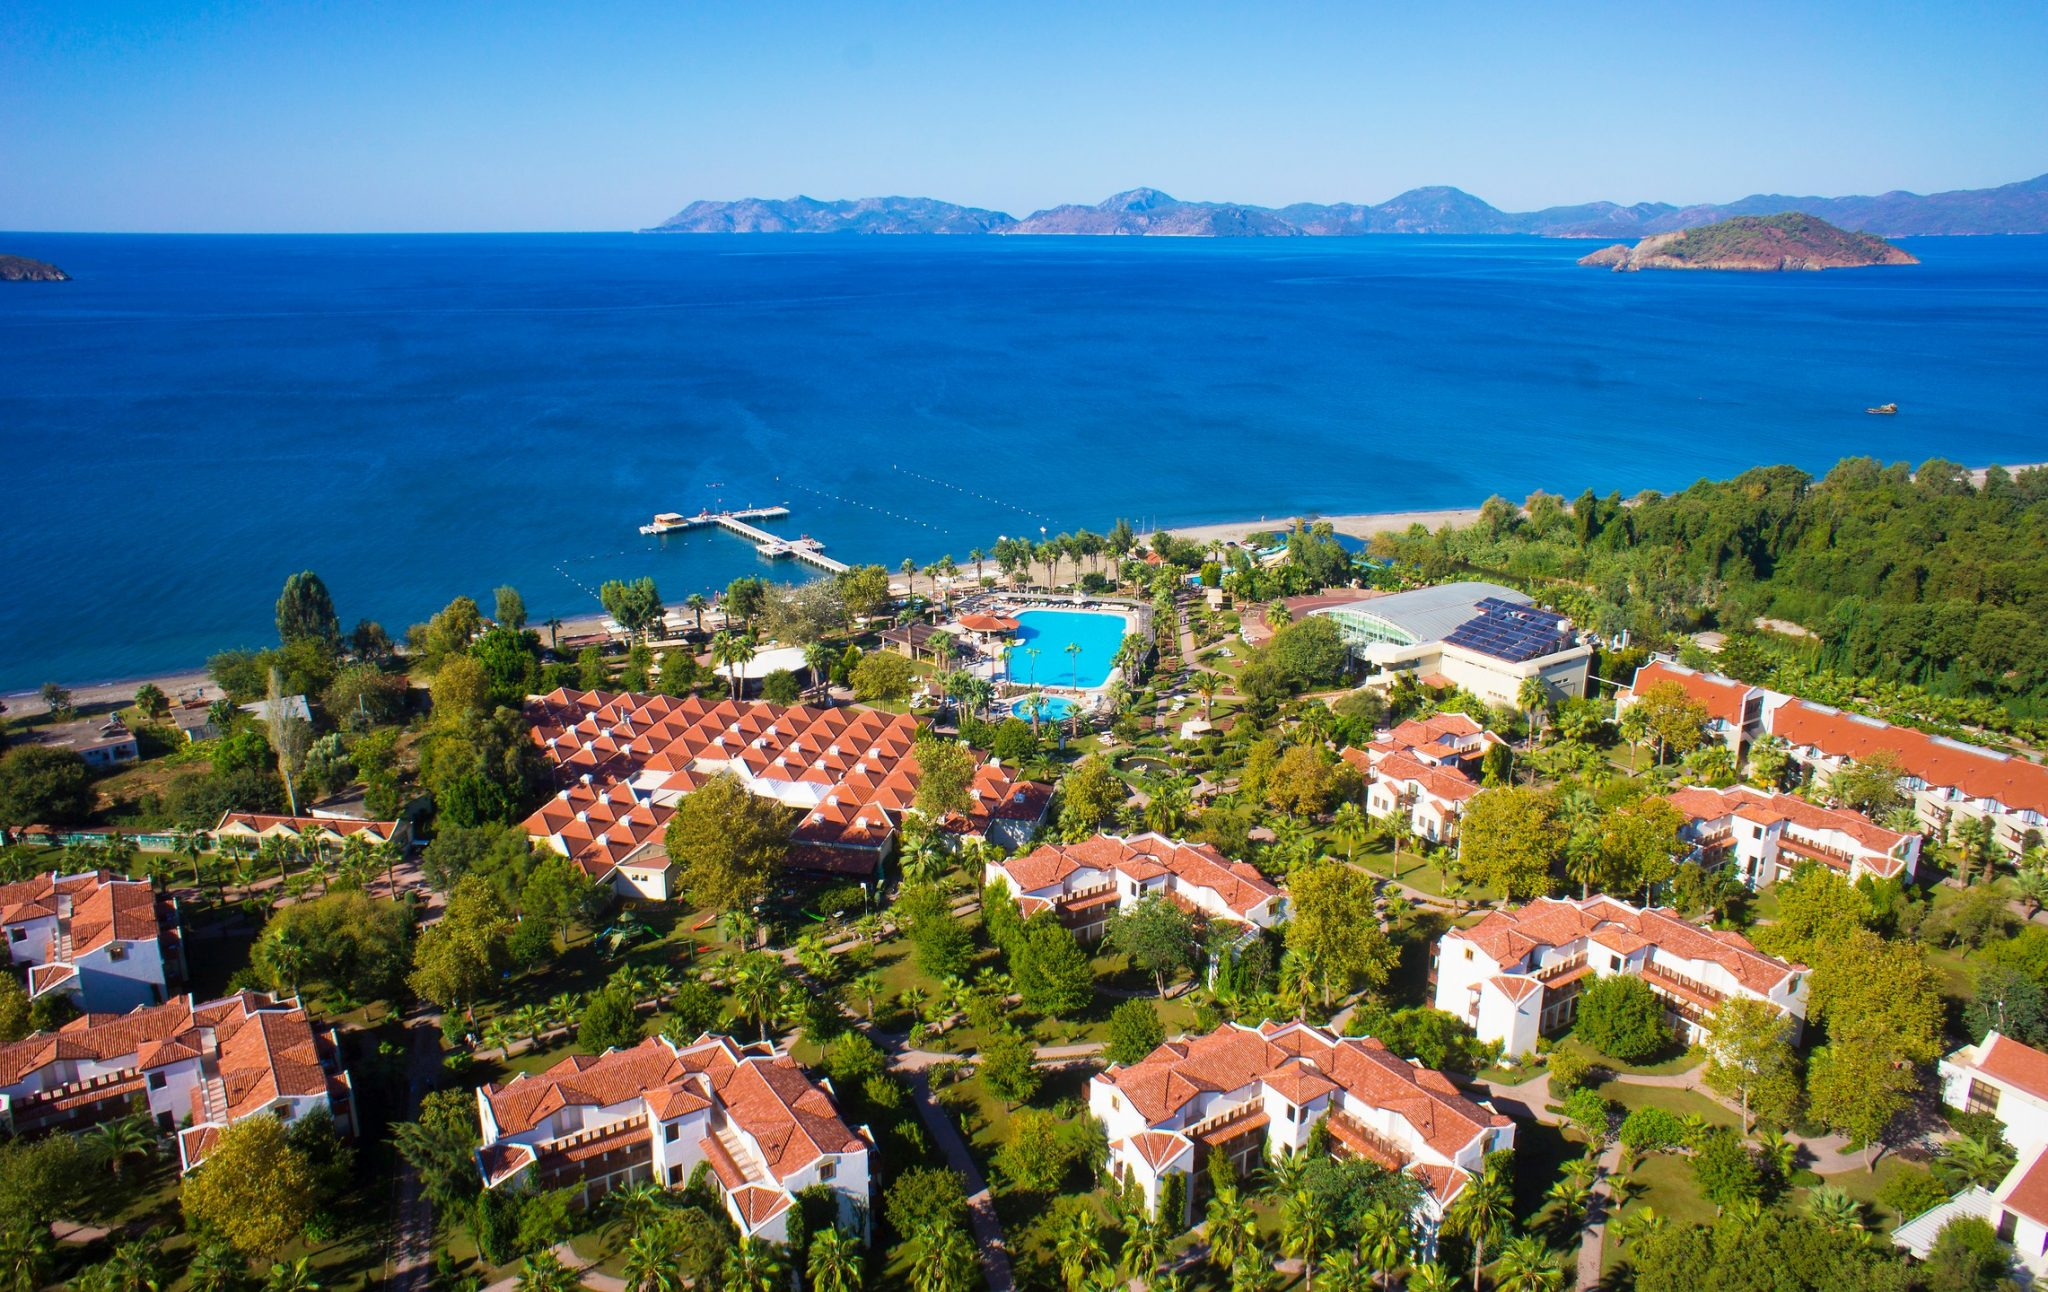 Properties For Sale in Fethiye